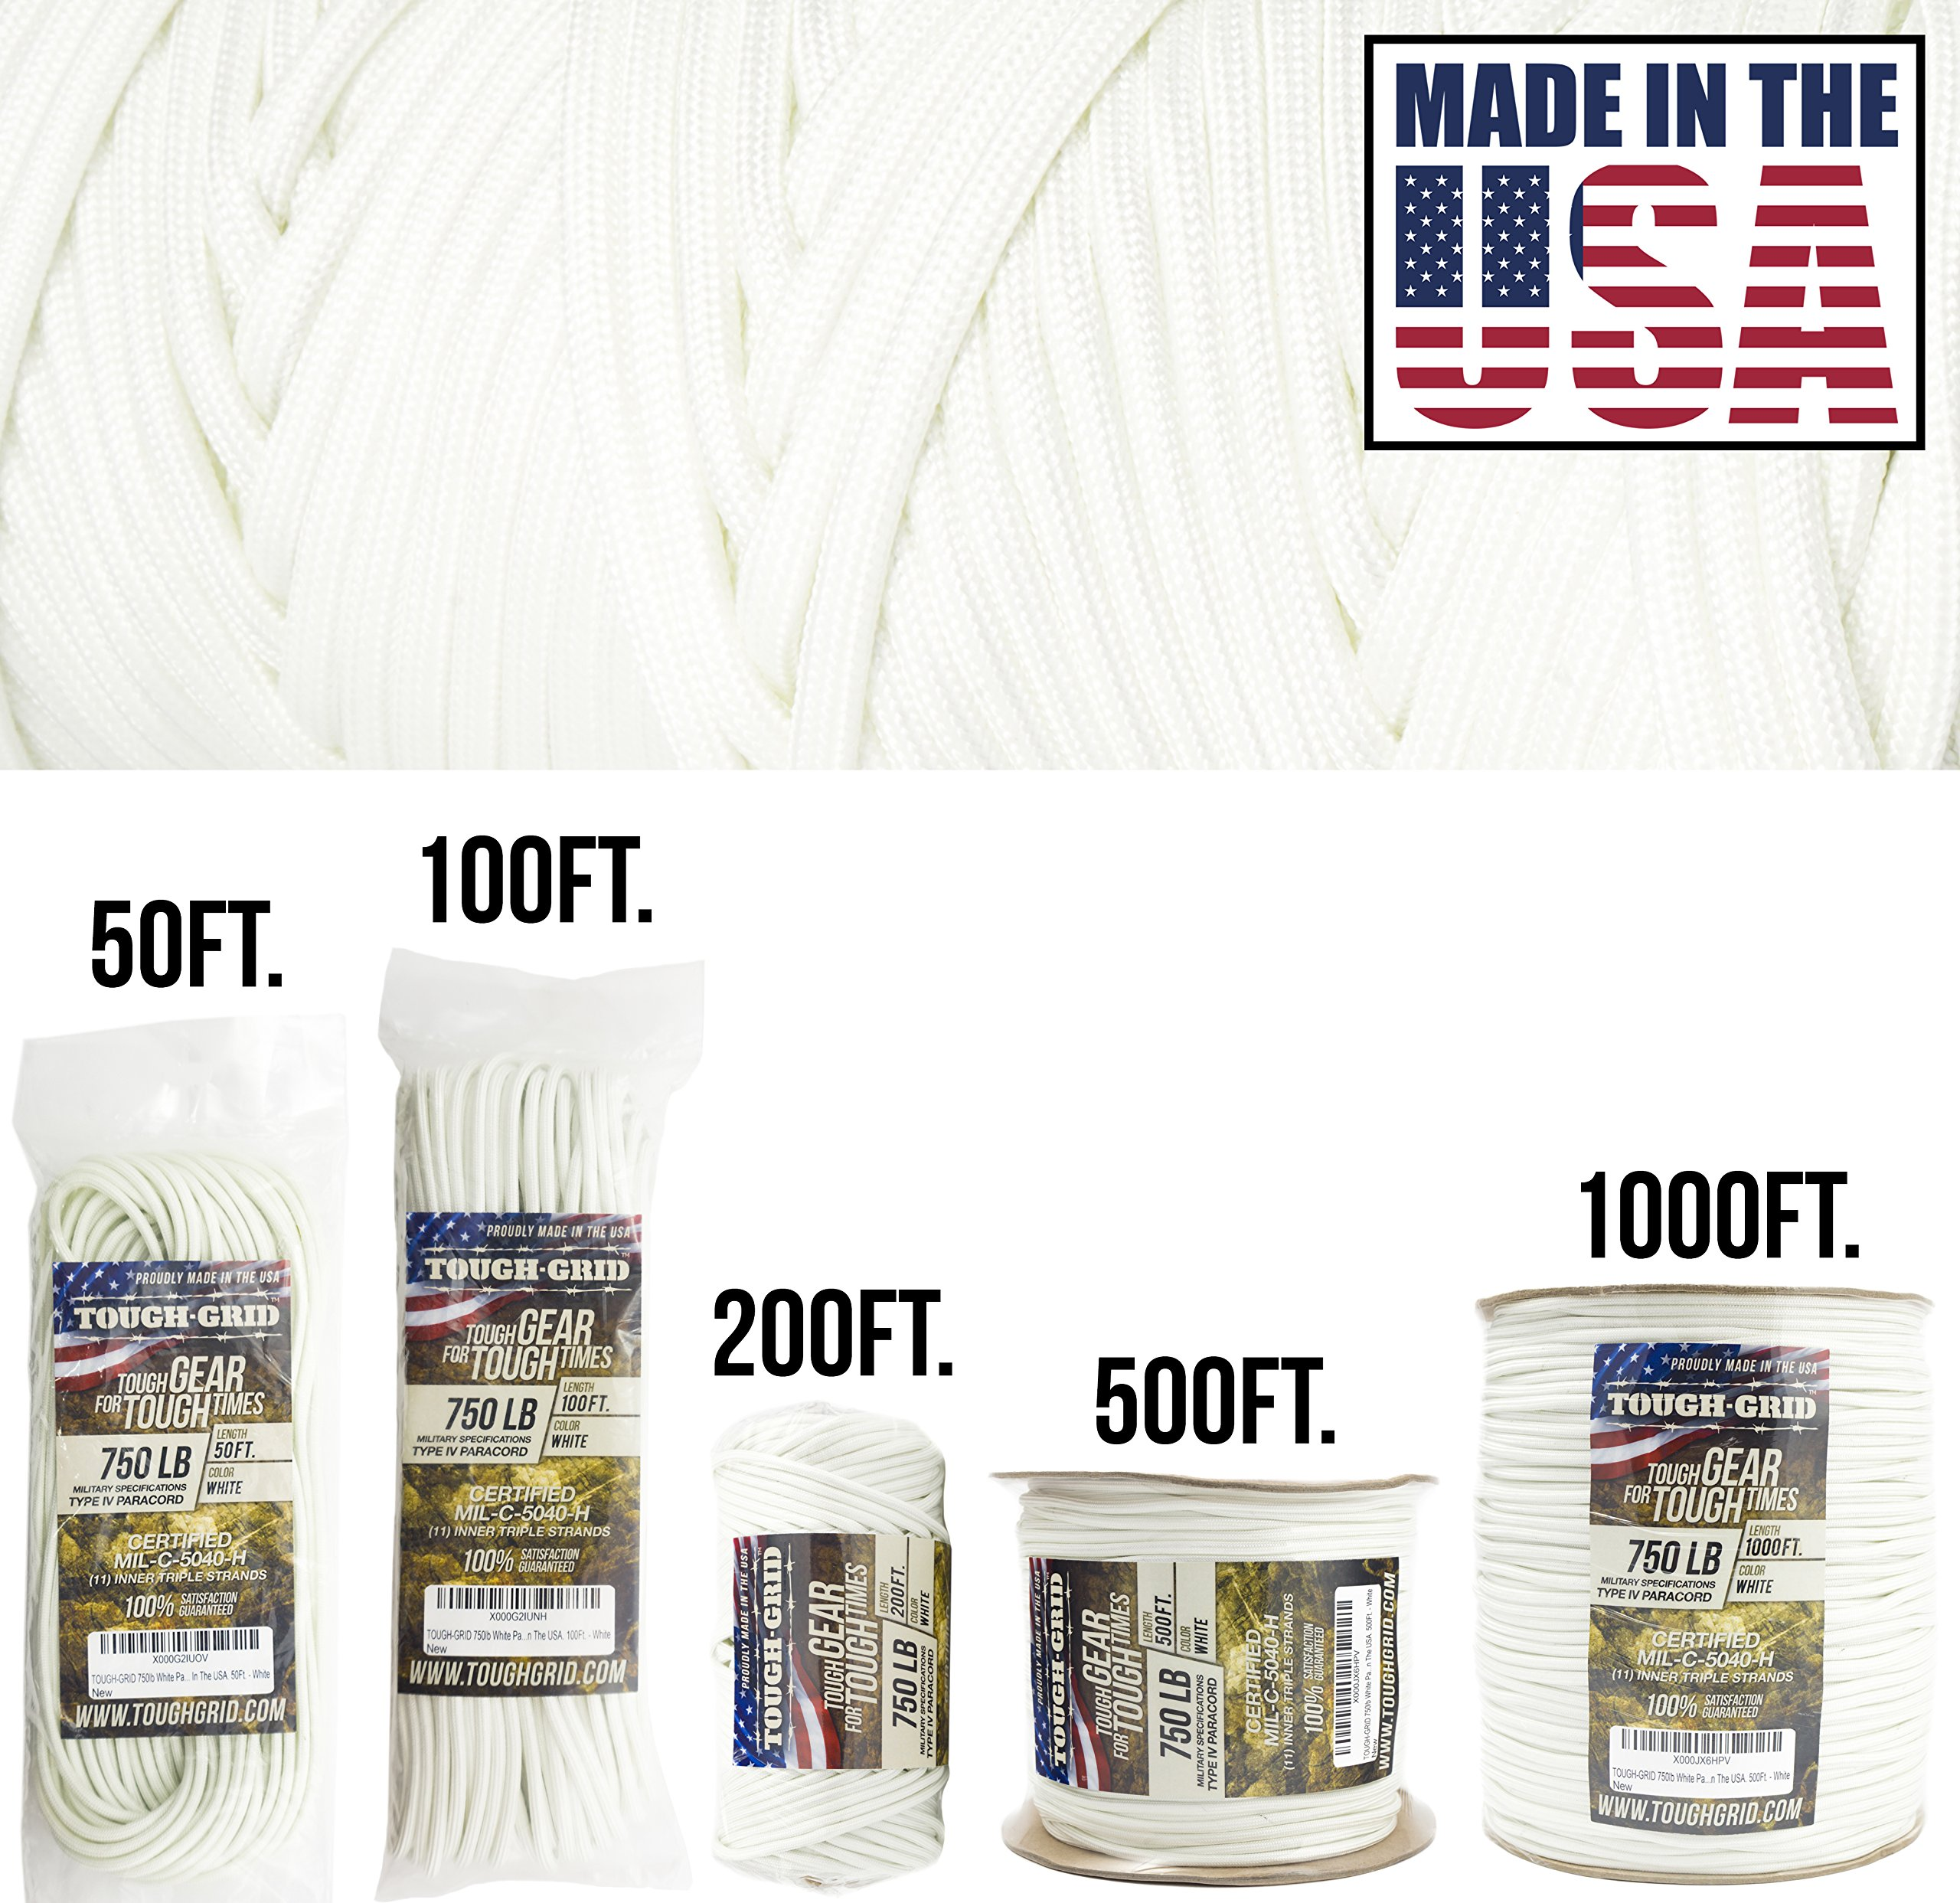 TOUGH-GRID 750lb White Paracord/Parachute Cord - Genuine Mil Spec Type IV 750lb Paracord Used by The US Military (MIl-C-5040-H) - 100% Nylon - Made in The USA. 500Ft. - White by TOUGH-GRID